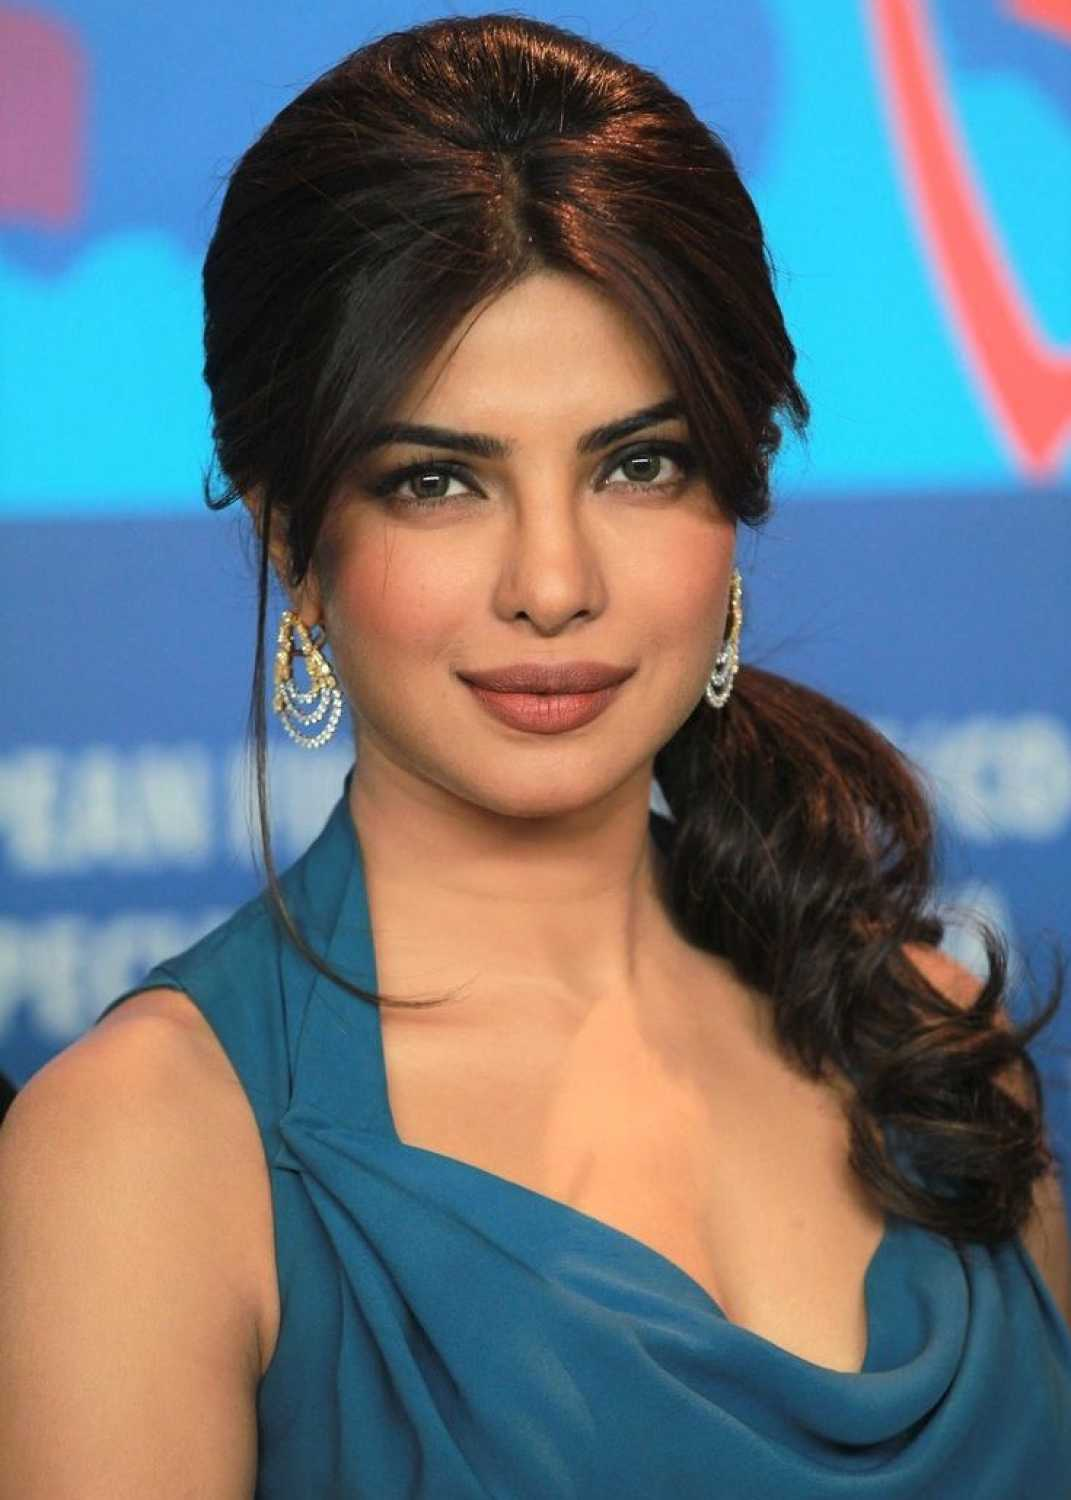 priyanka chopra movies, filmography, biography and songs - cinestaan